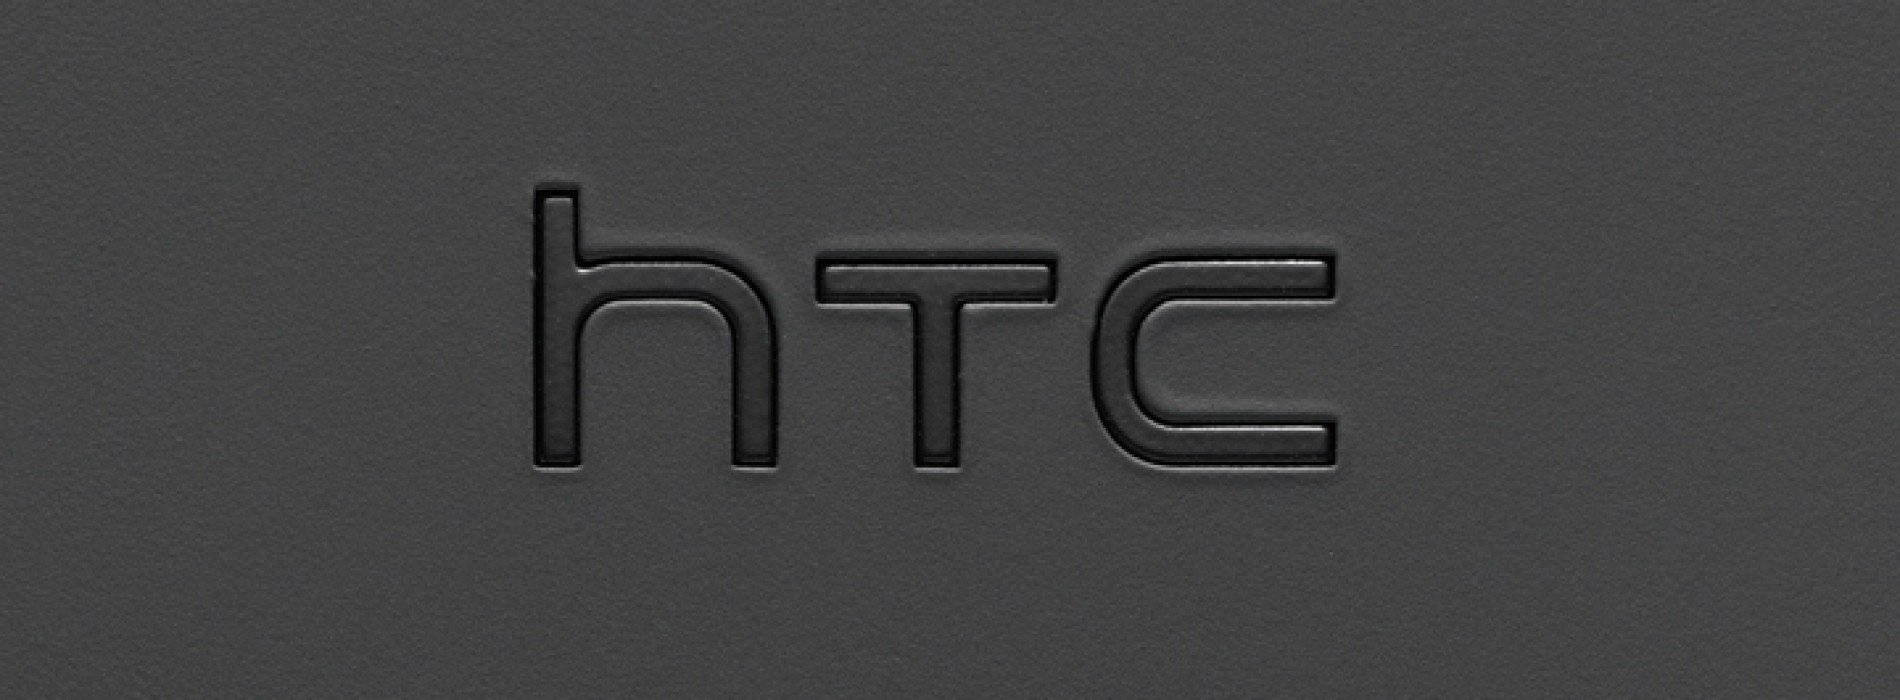 HTC talks about delay for HTC One, confirms it's camera-related